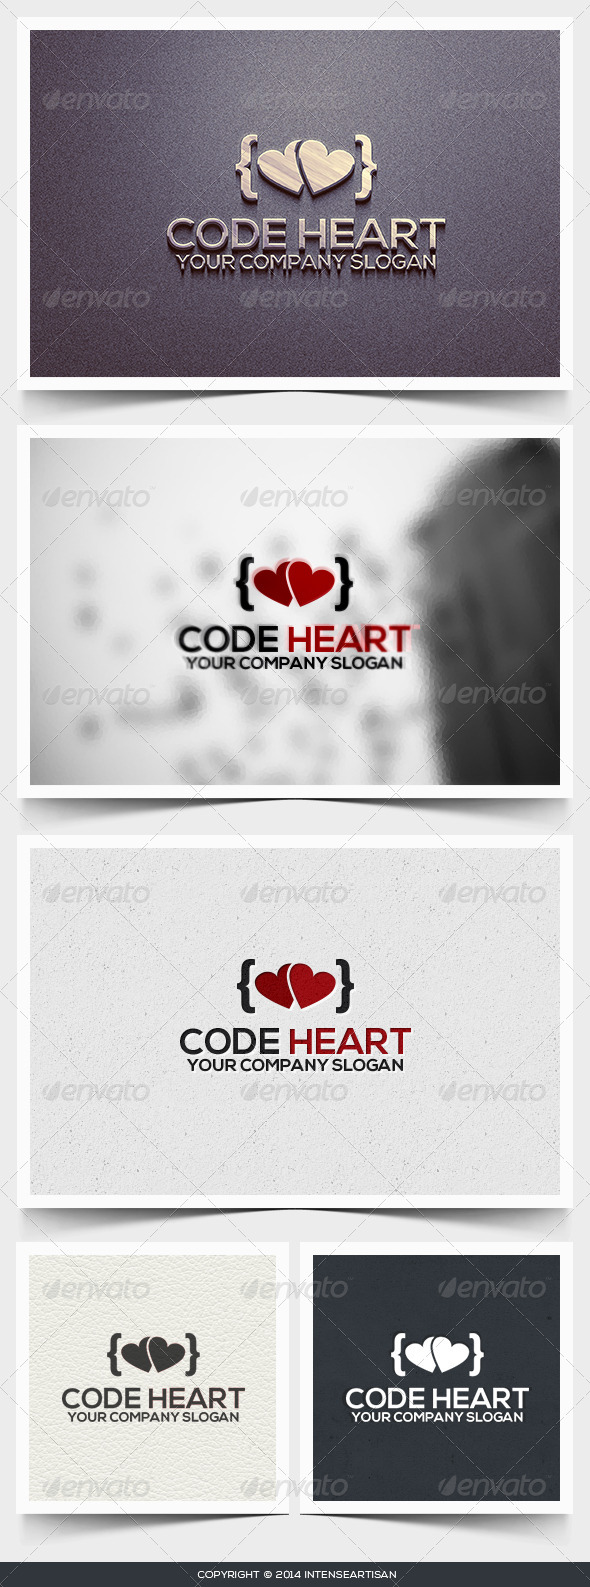 Code Heart Logo Template - Objects Logo Templates